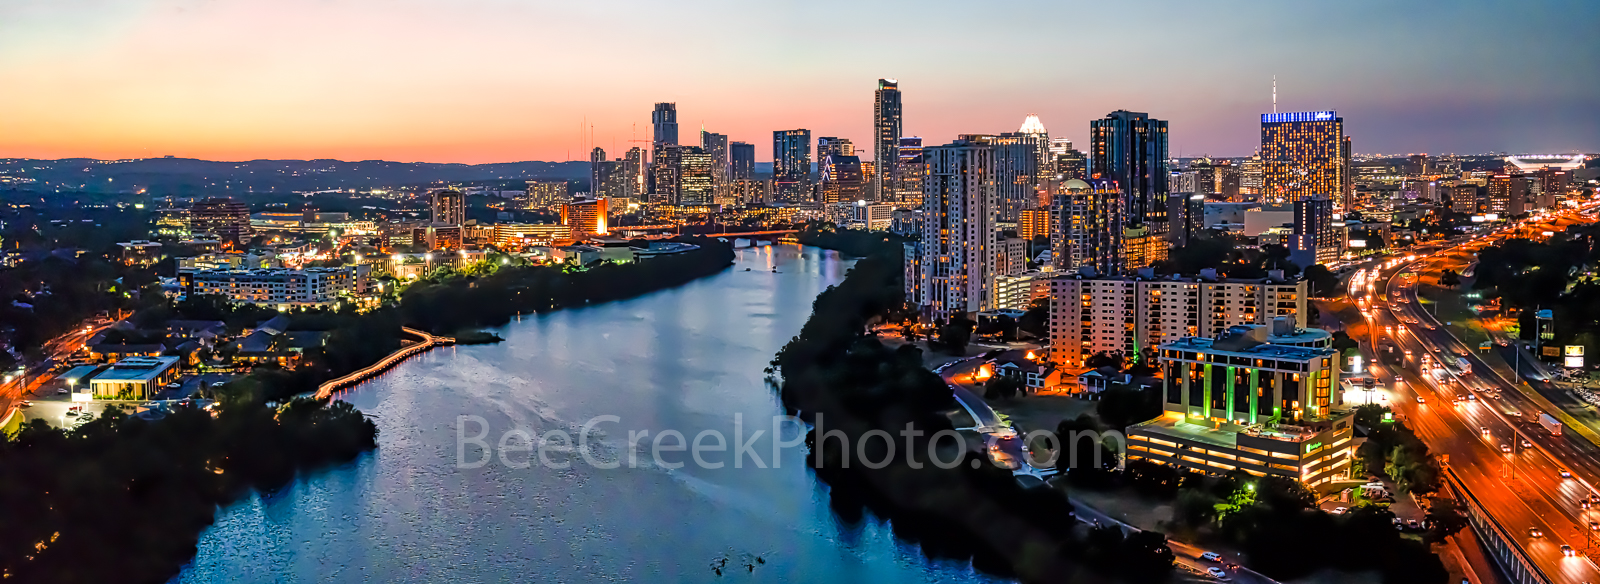 Austin Downtown Night Pano, Austin skyline, Austin cityscape, downtown, shoreline, lady bird lake, town lake, cityscape, Independent, Austonian, buildings,pano, panorama, aerial, drone, , photo